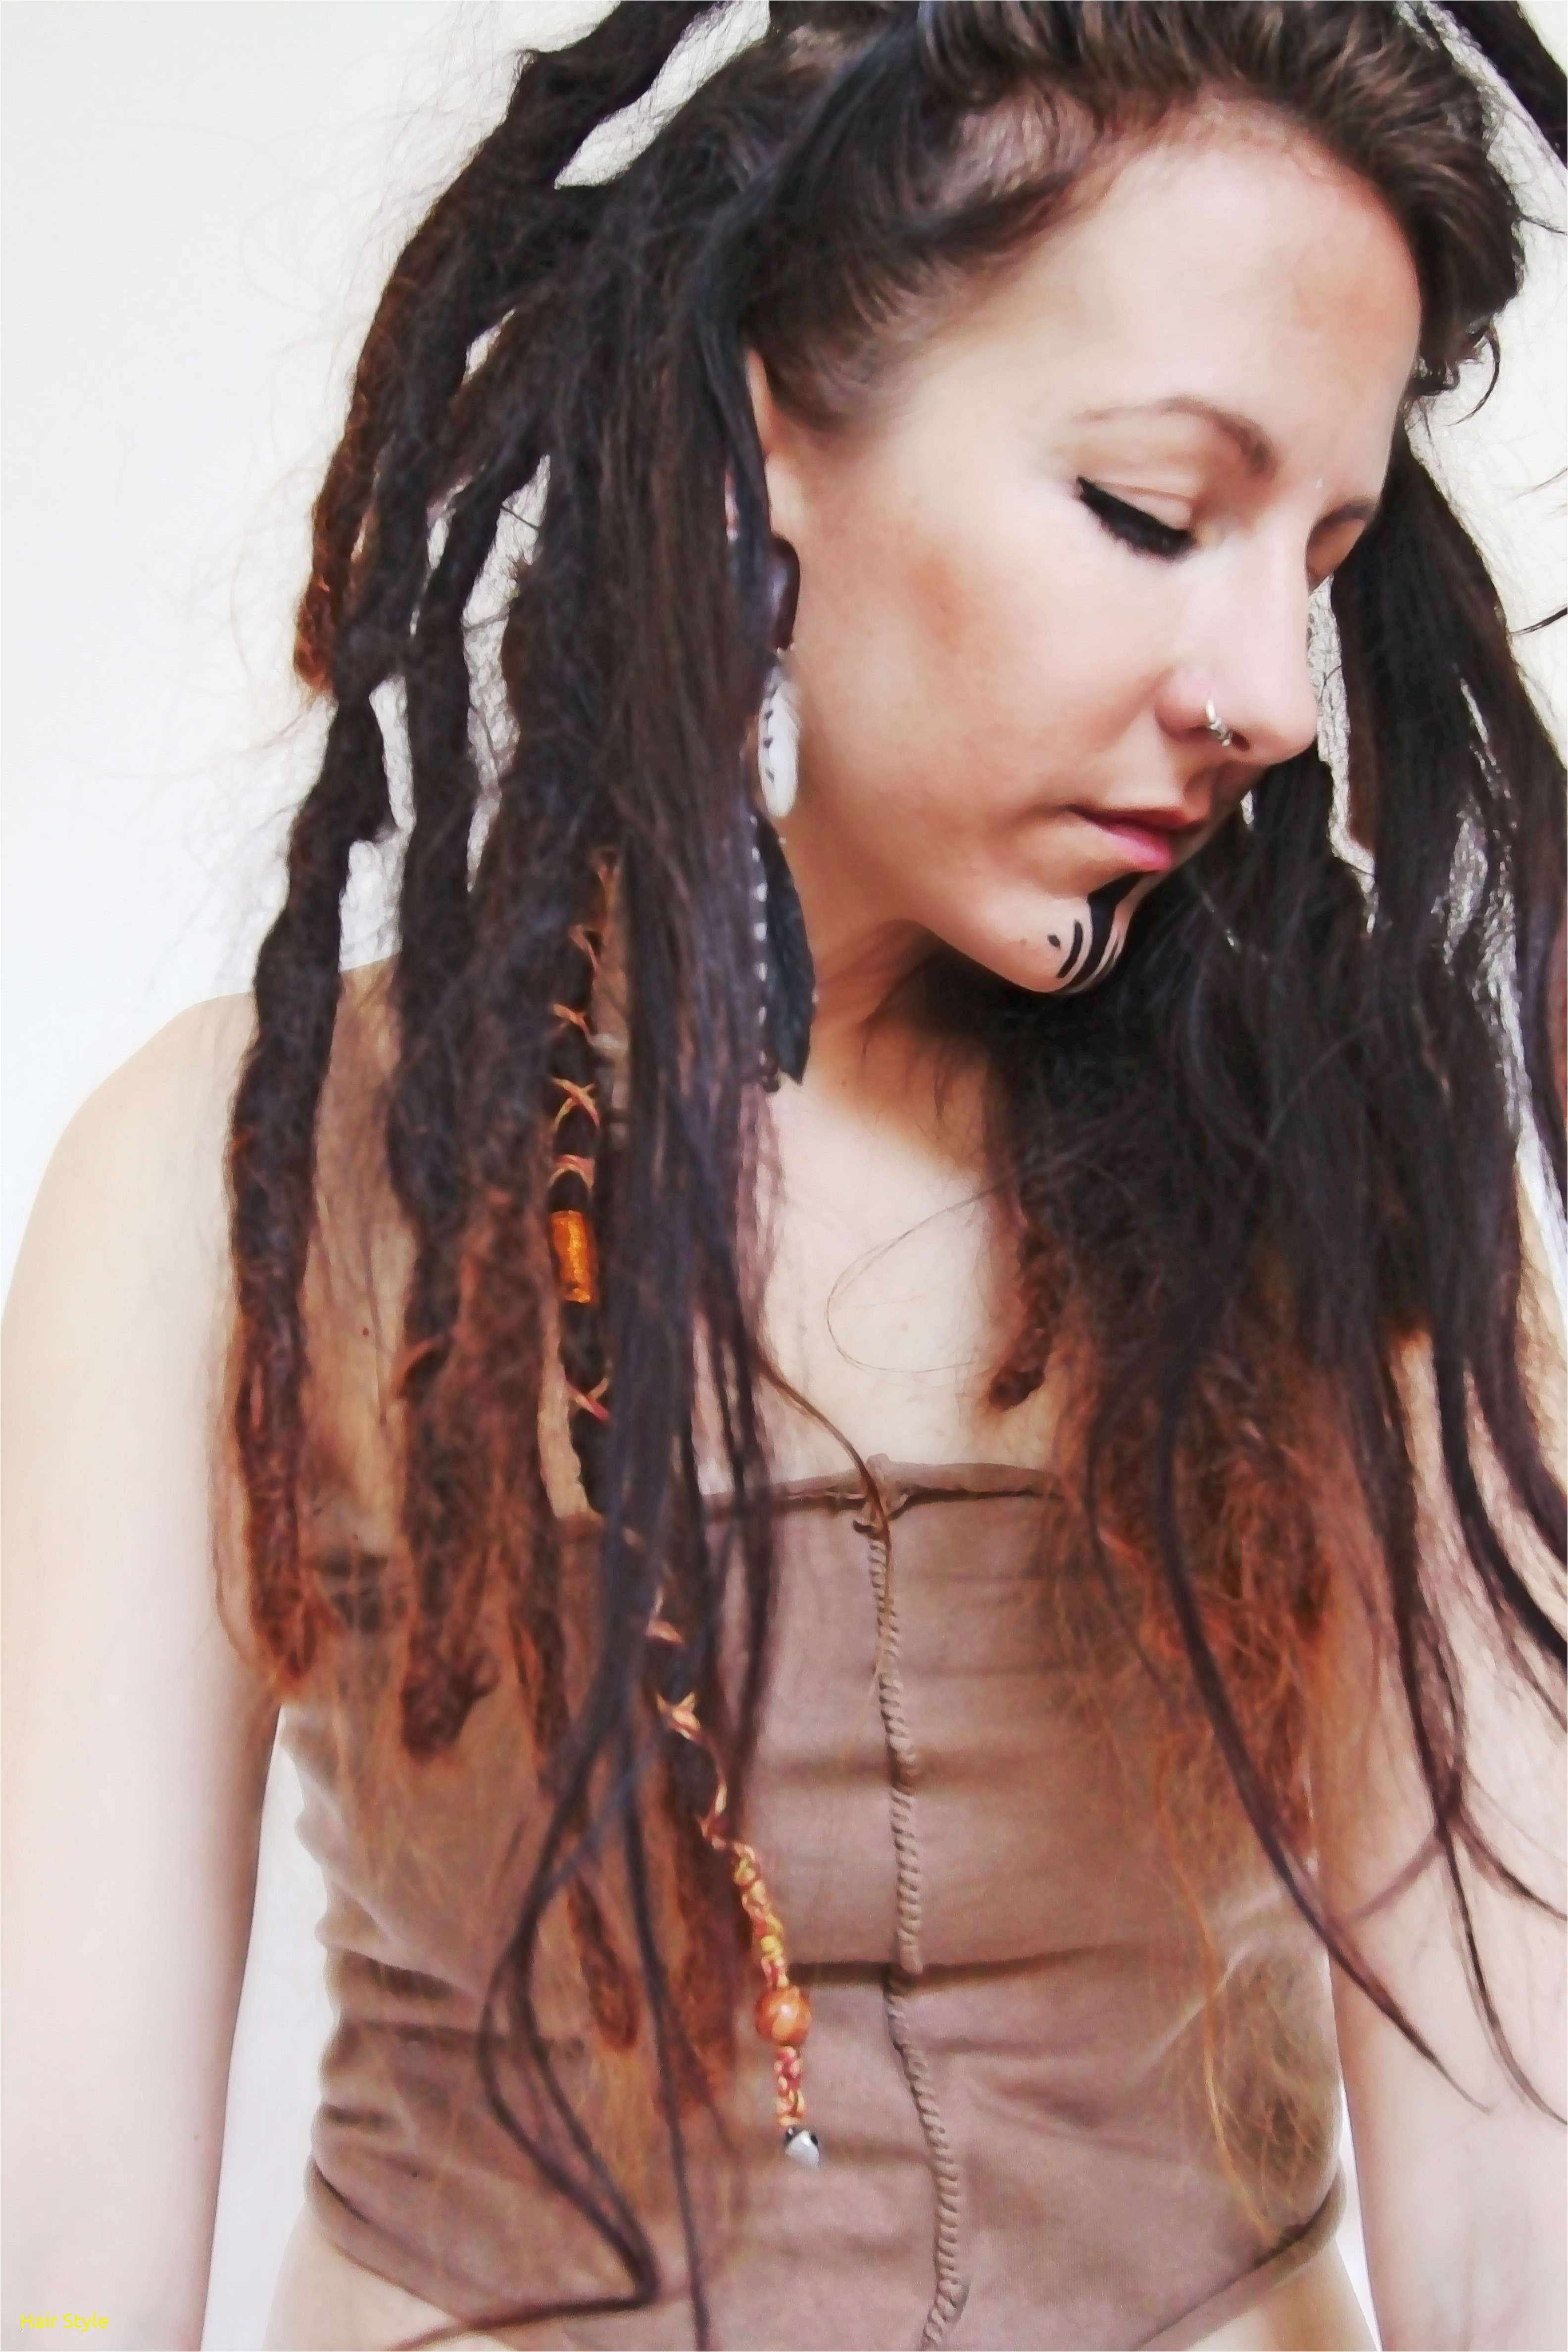 Dreadlocks Hairstyles Names Short Hairstyle Girl Unique Short Haircut for Thick Hair 0d